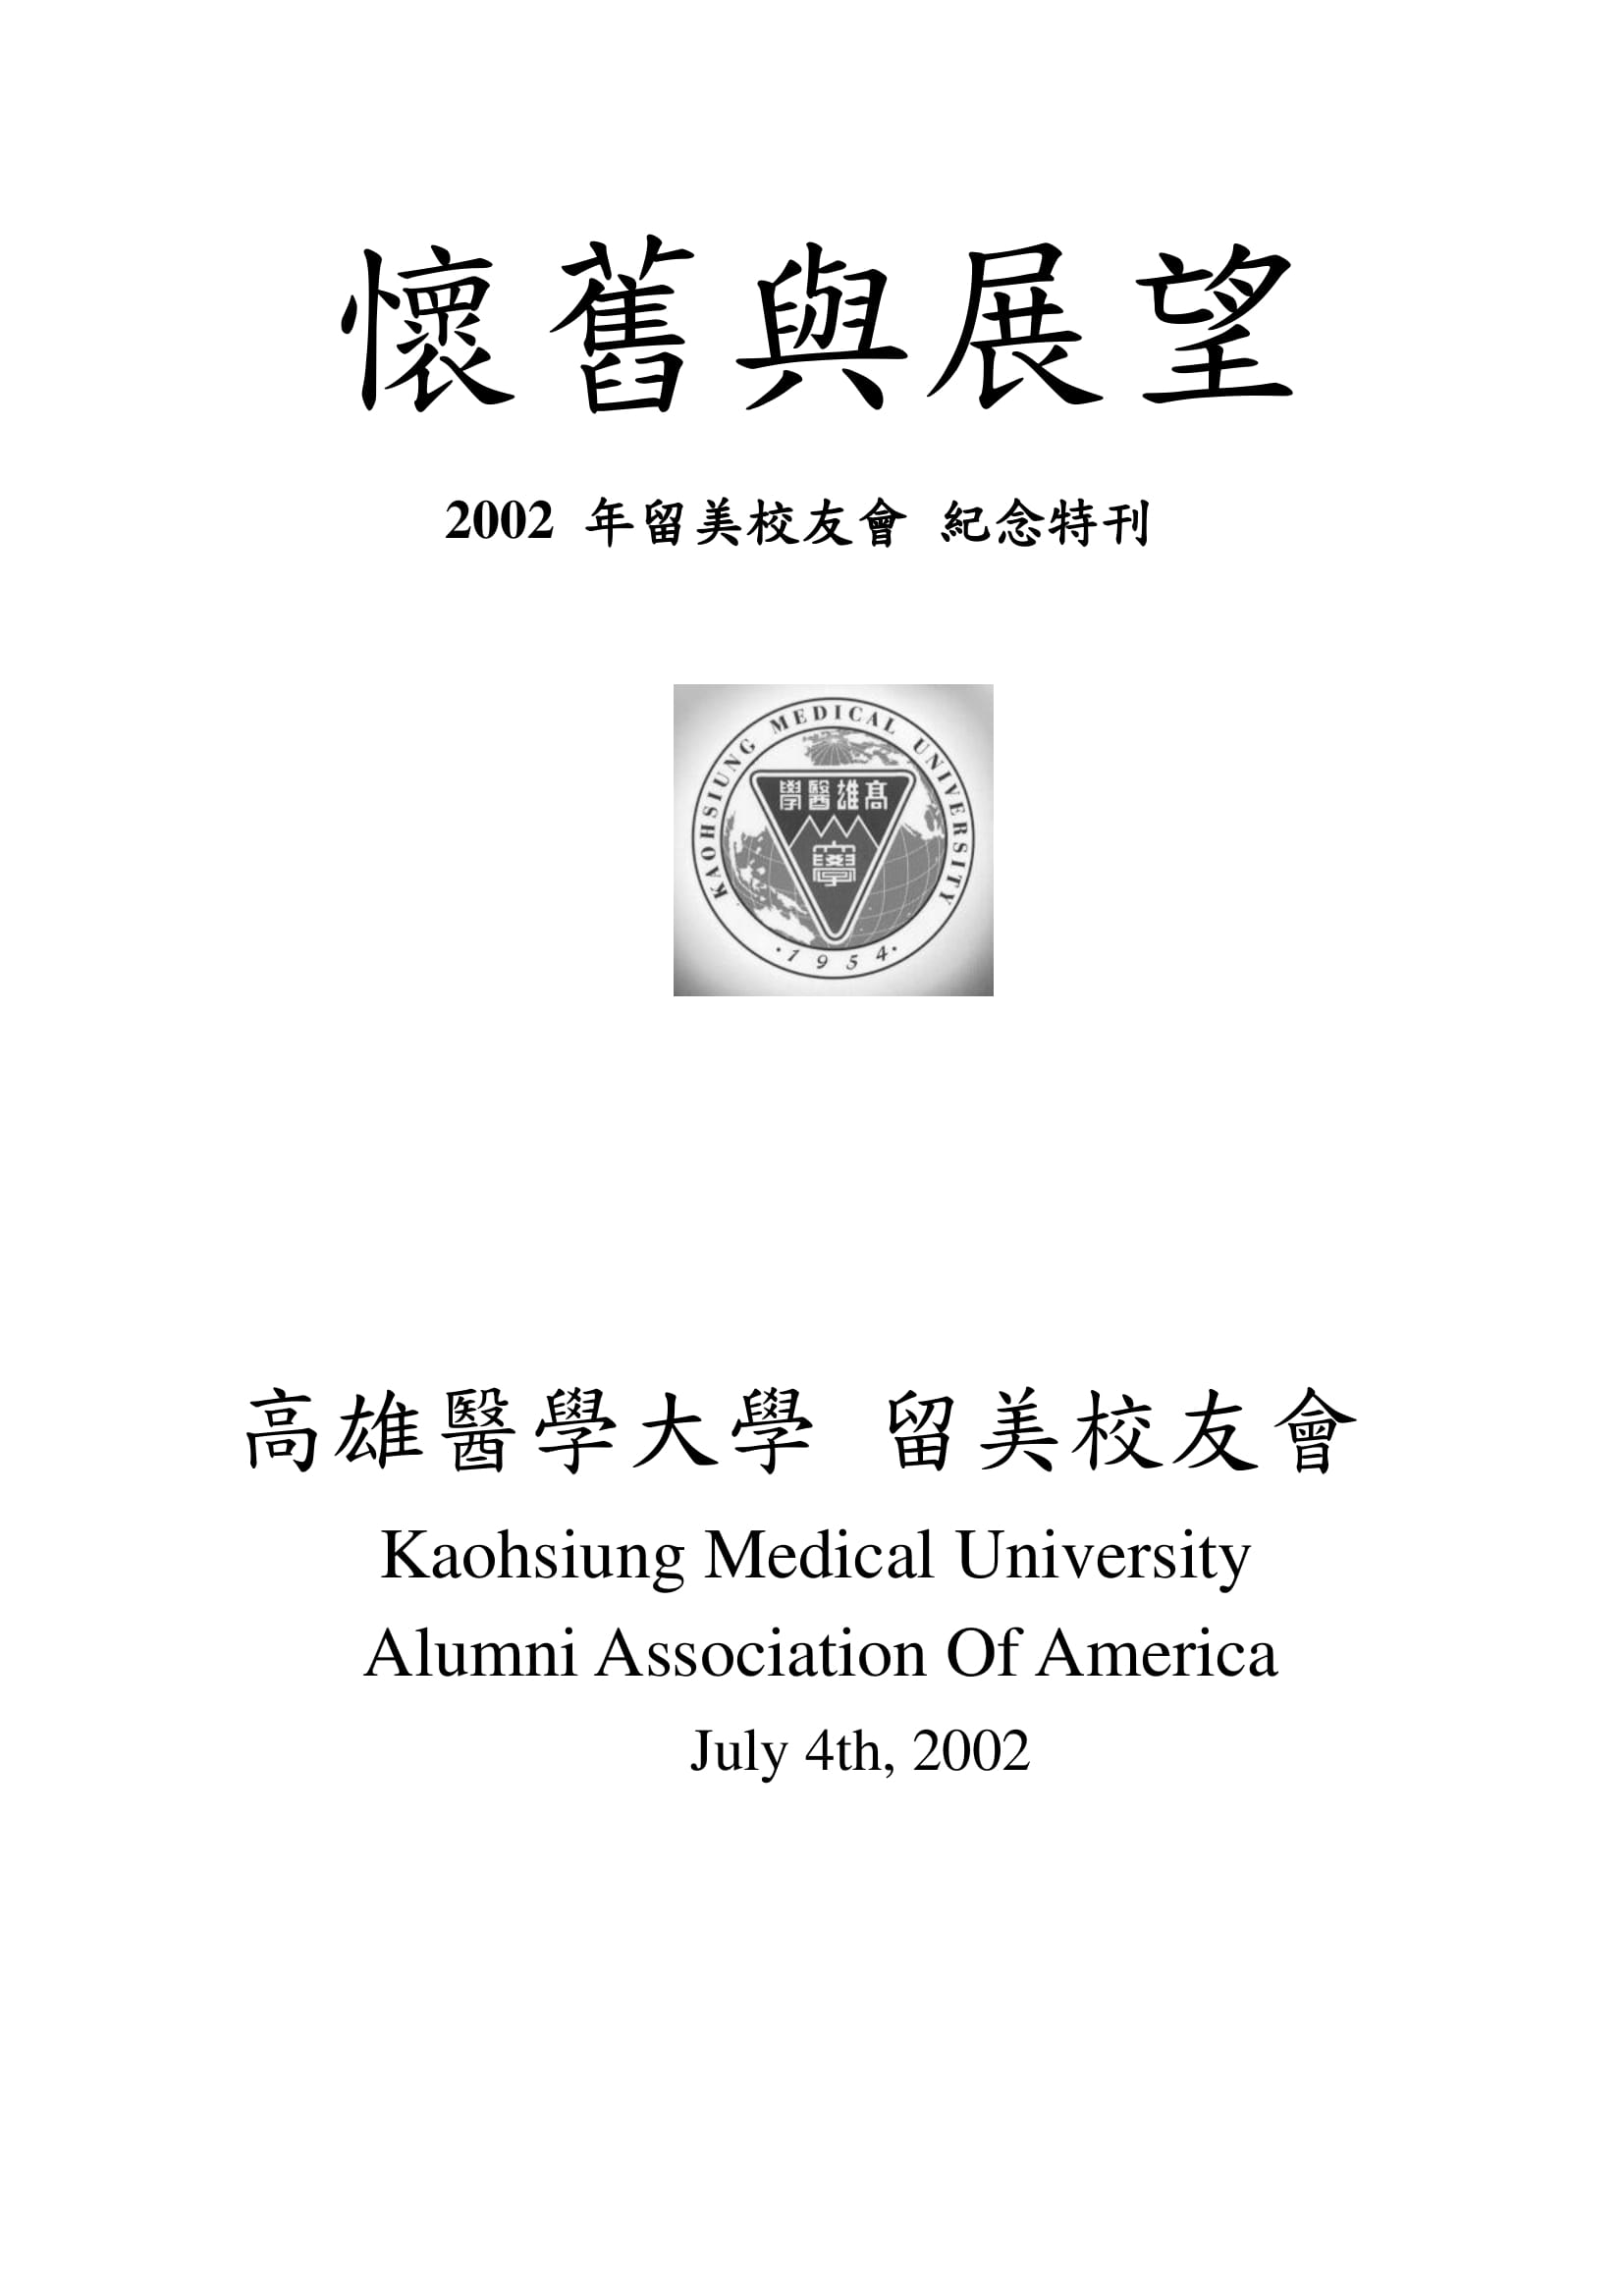 1335. Program Book of 2002 Kaohsiung Medical University America Alumni Association (KMUAAA) Los Angeles Convention / 高雄醫學大學北美校友會 /07/2002/Magazines/雜誌